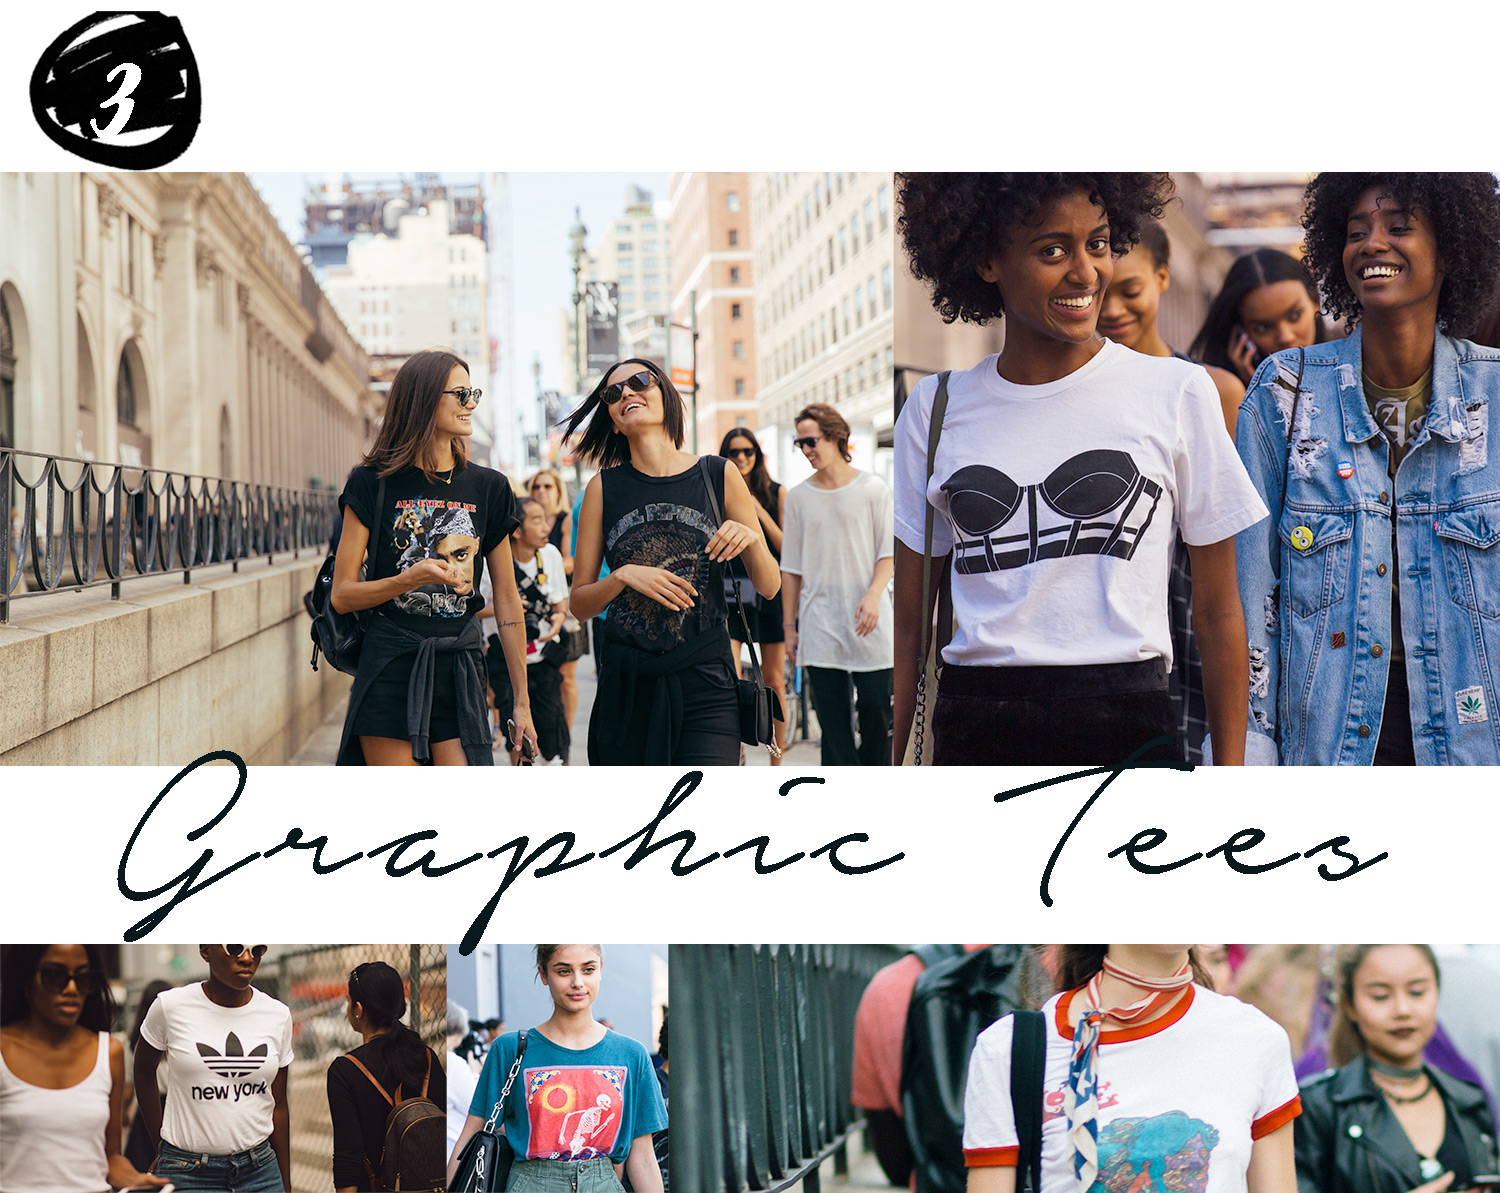 Style Report Fashion Week trends 2016 Graphic T shirts by Armenyl.com